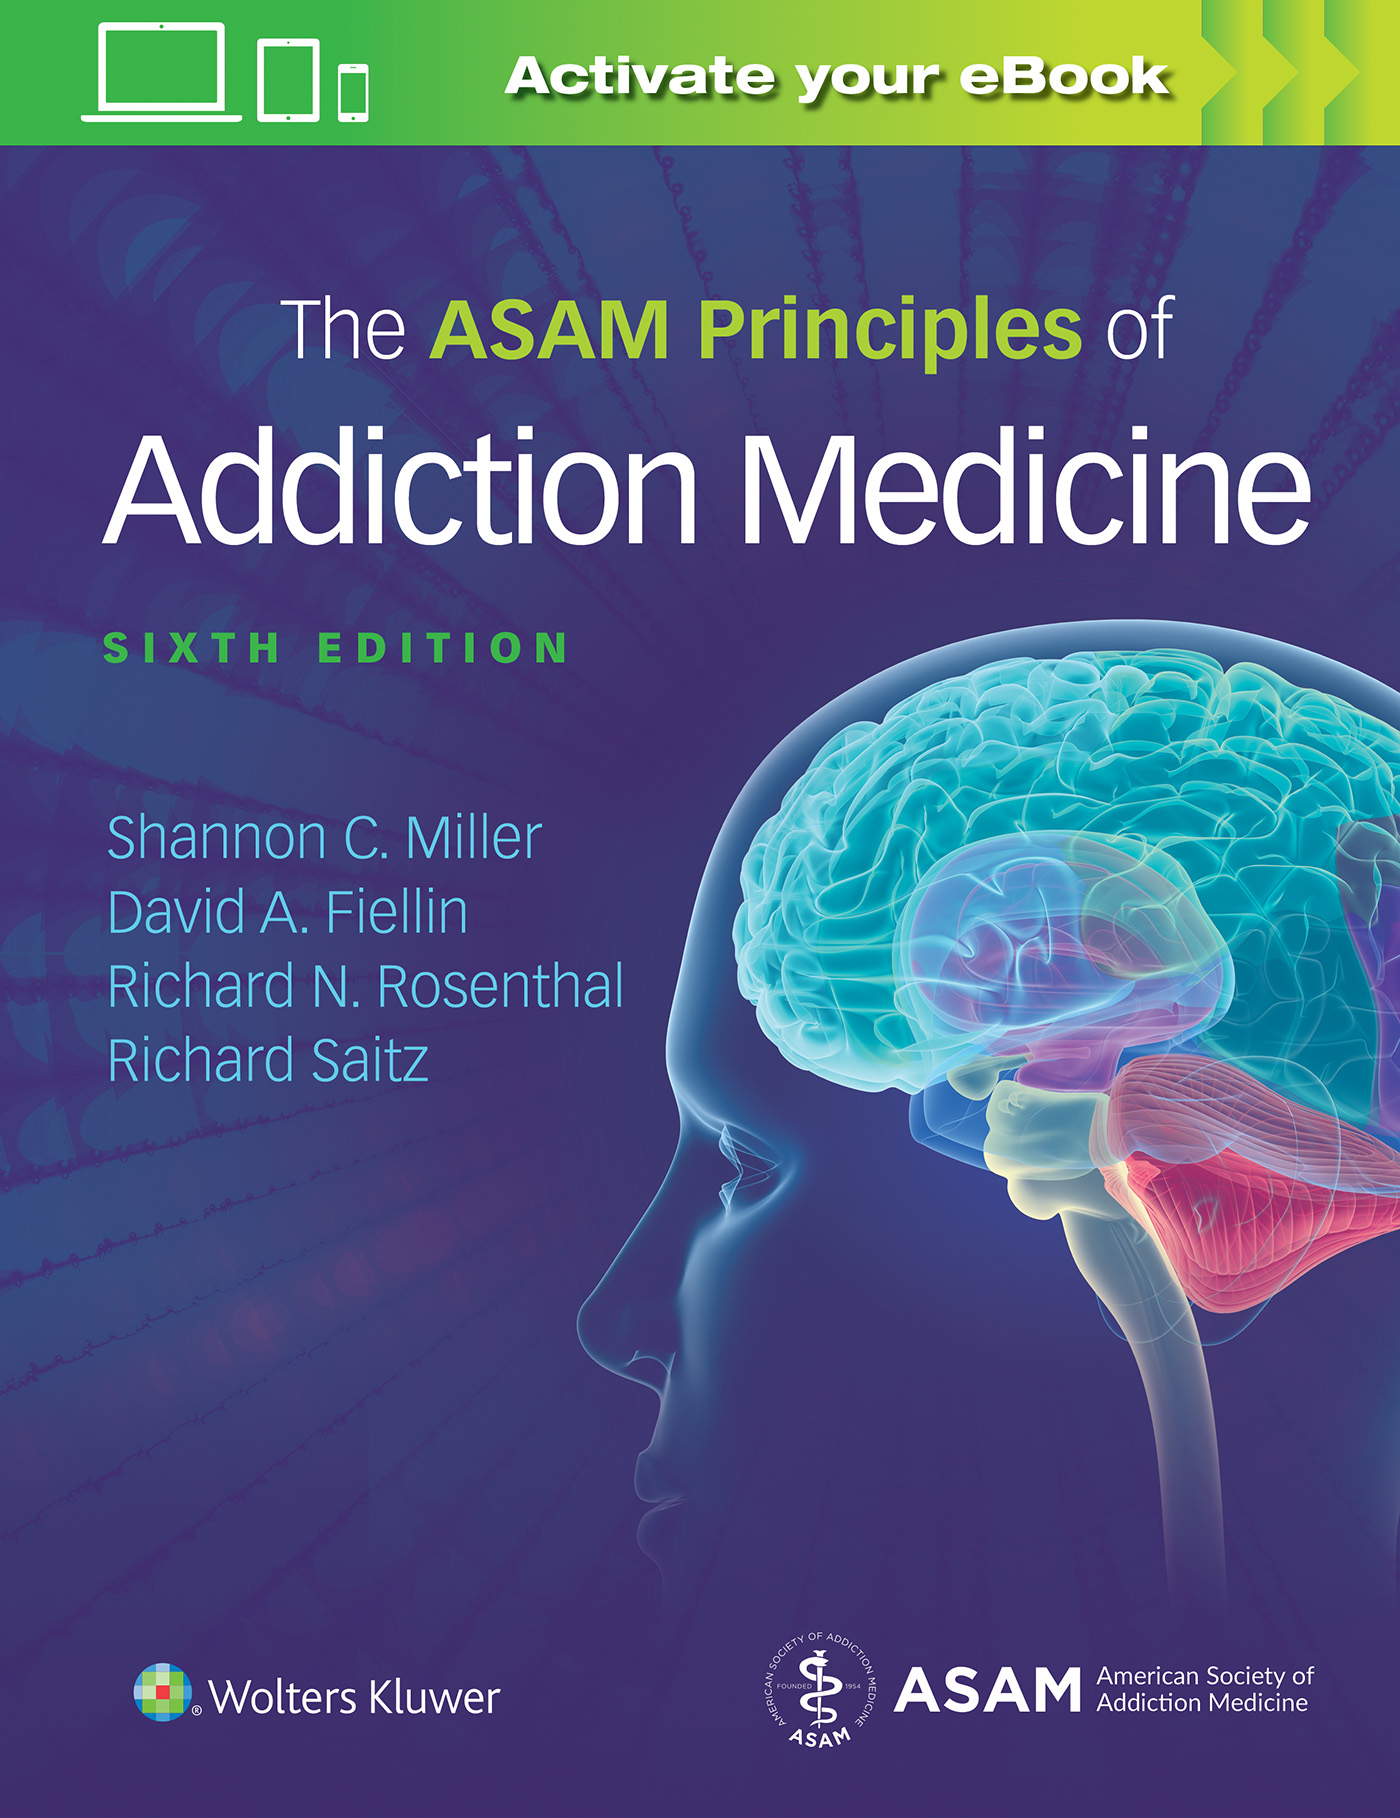 ASAM'S Principles of Addiction Medicine